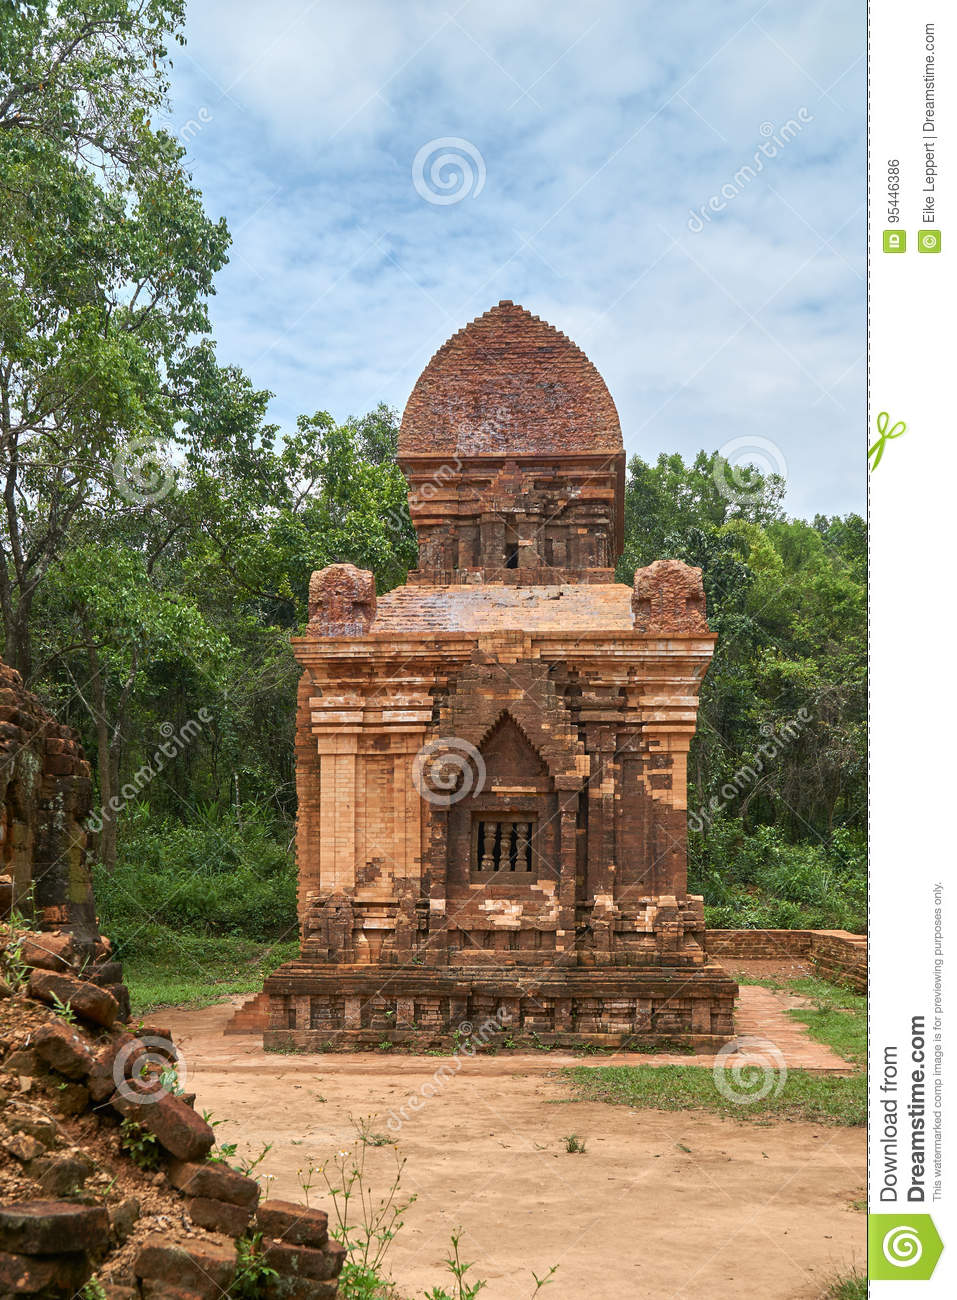 Old religious buildings from the Champa empire - cham culture. In my son, near Hoi an, Vietnam. World heritage site.